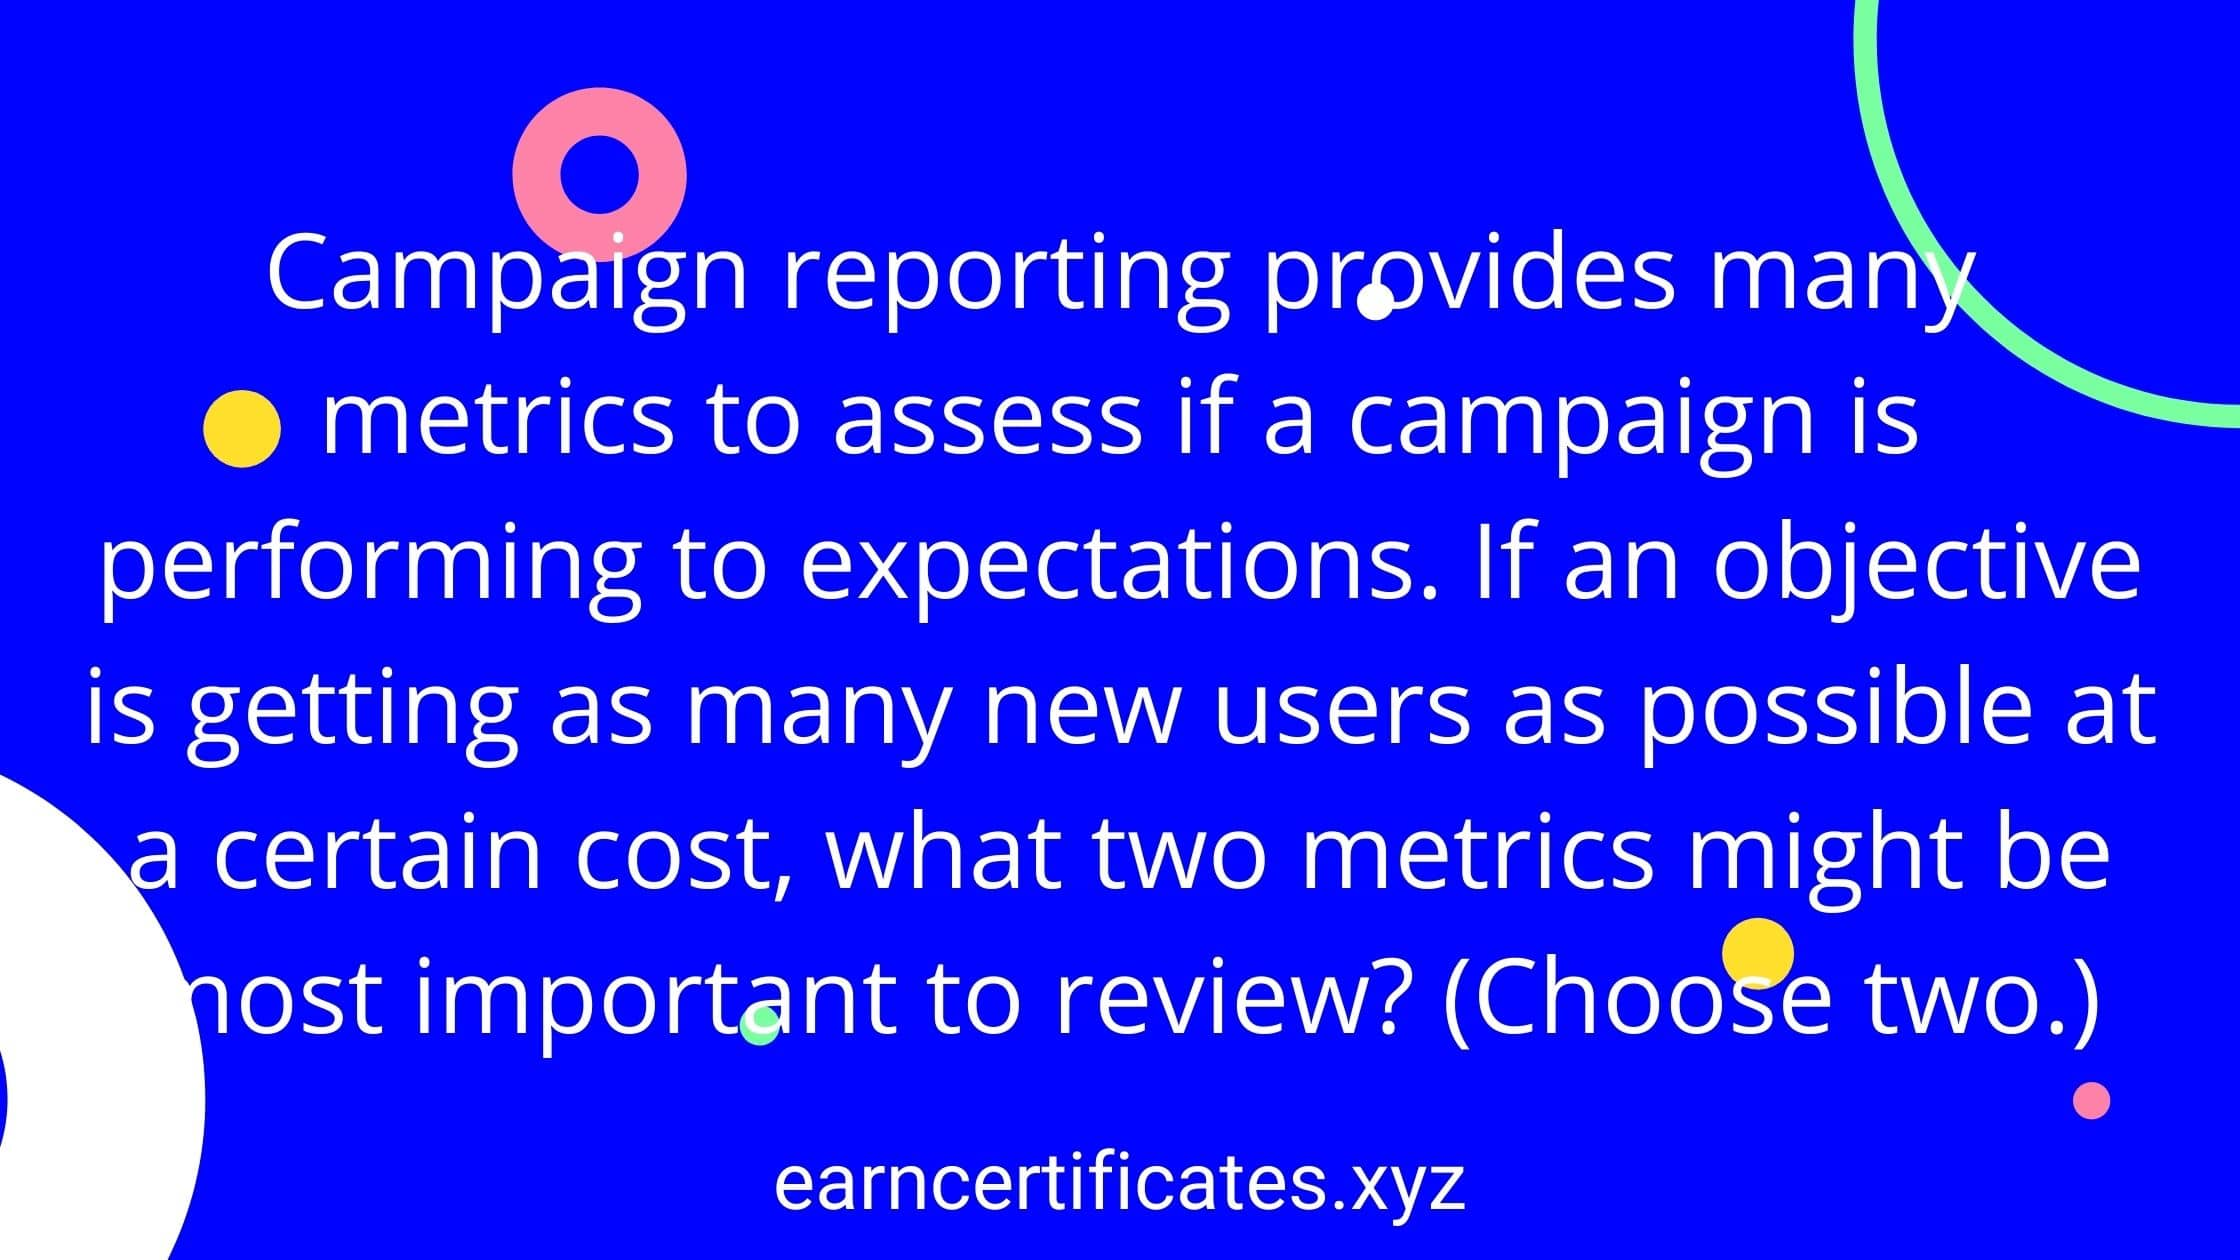 Campaign reporting provides many metrics to assess if a campaign is performing to expectations. If an objective is getting as many new users as possible at a certain cost, what two metrics might be most important to review? (Choose two.)